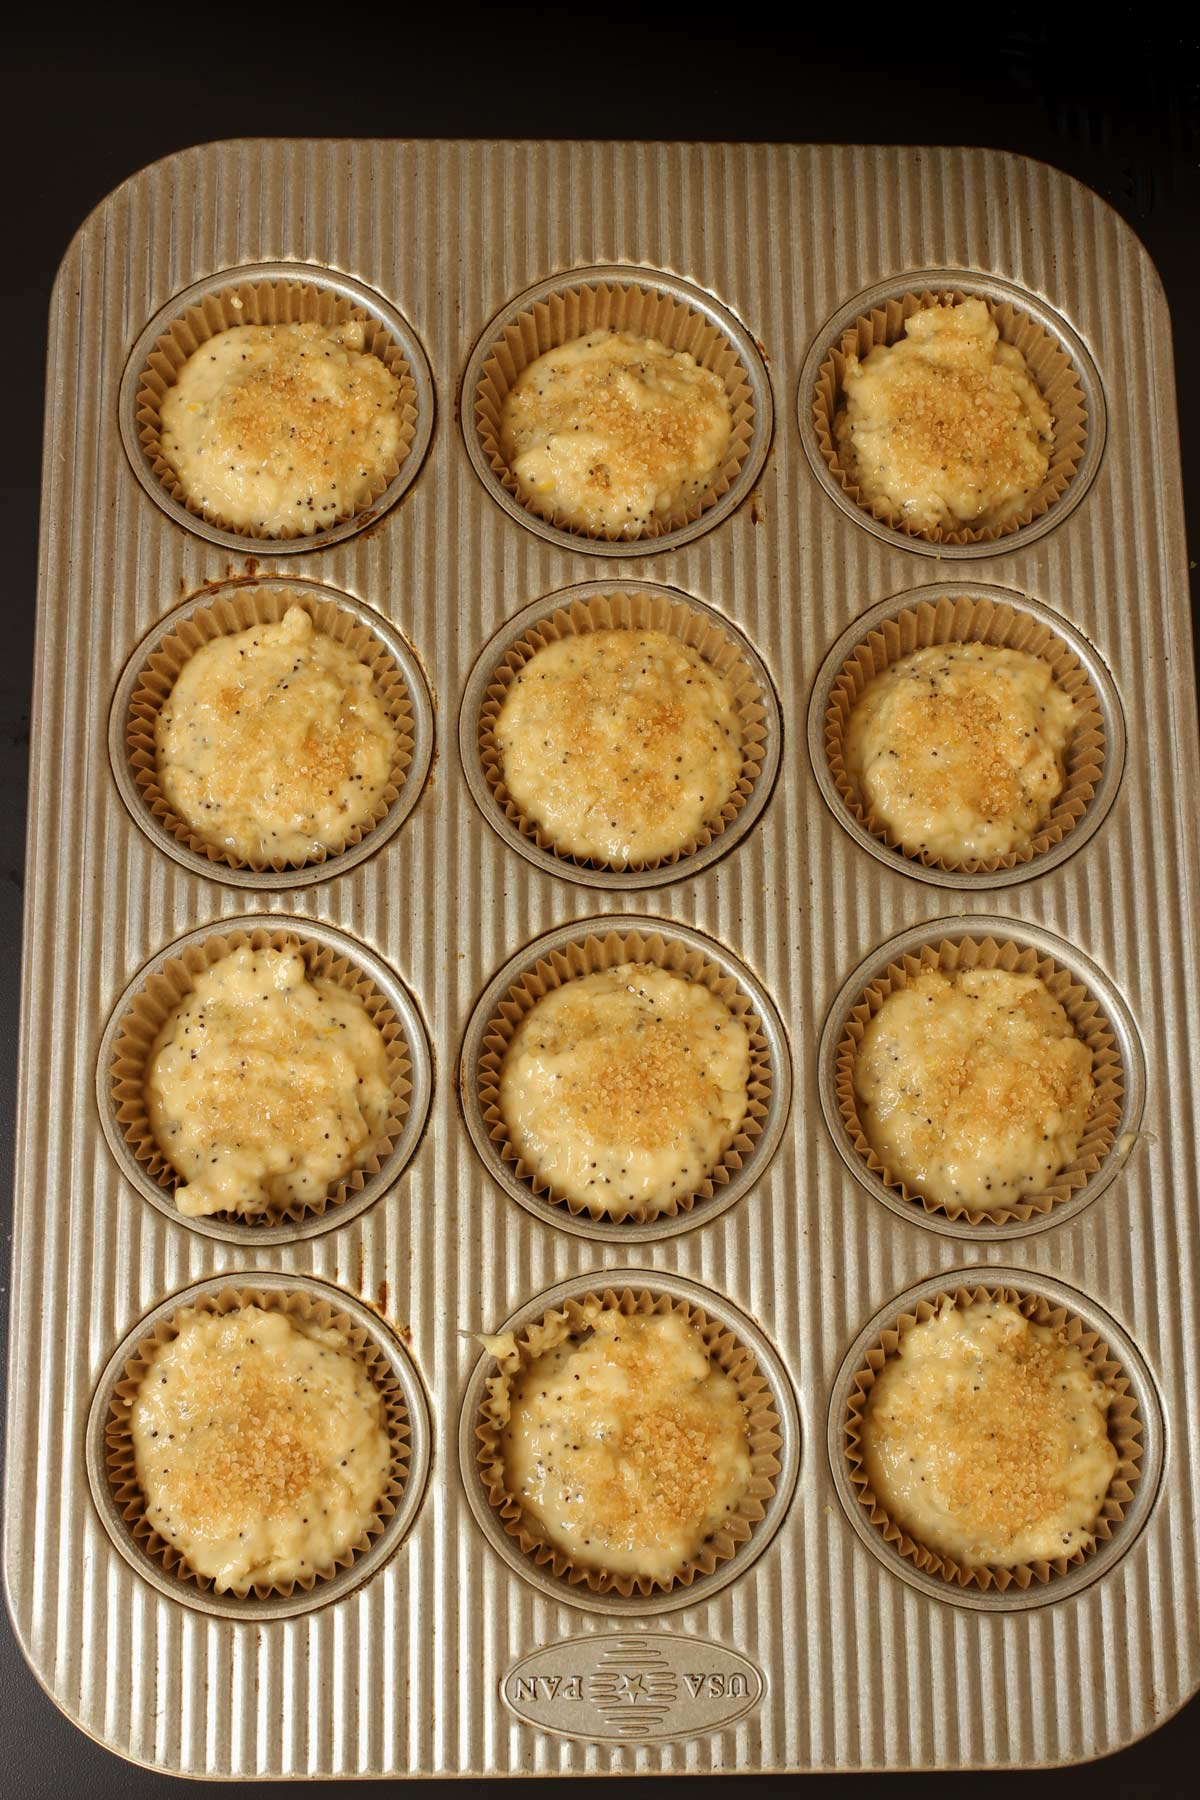 muffin batter topped with coarse sugar ready to bake.